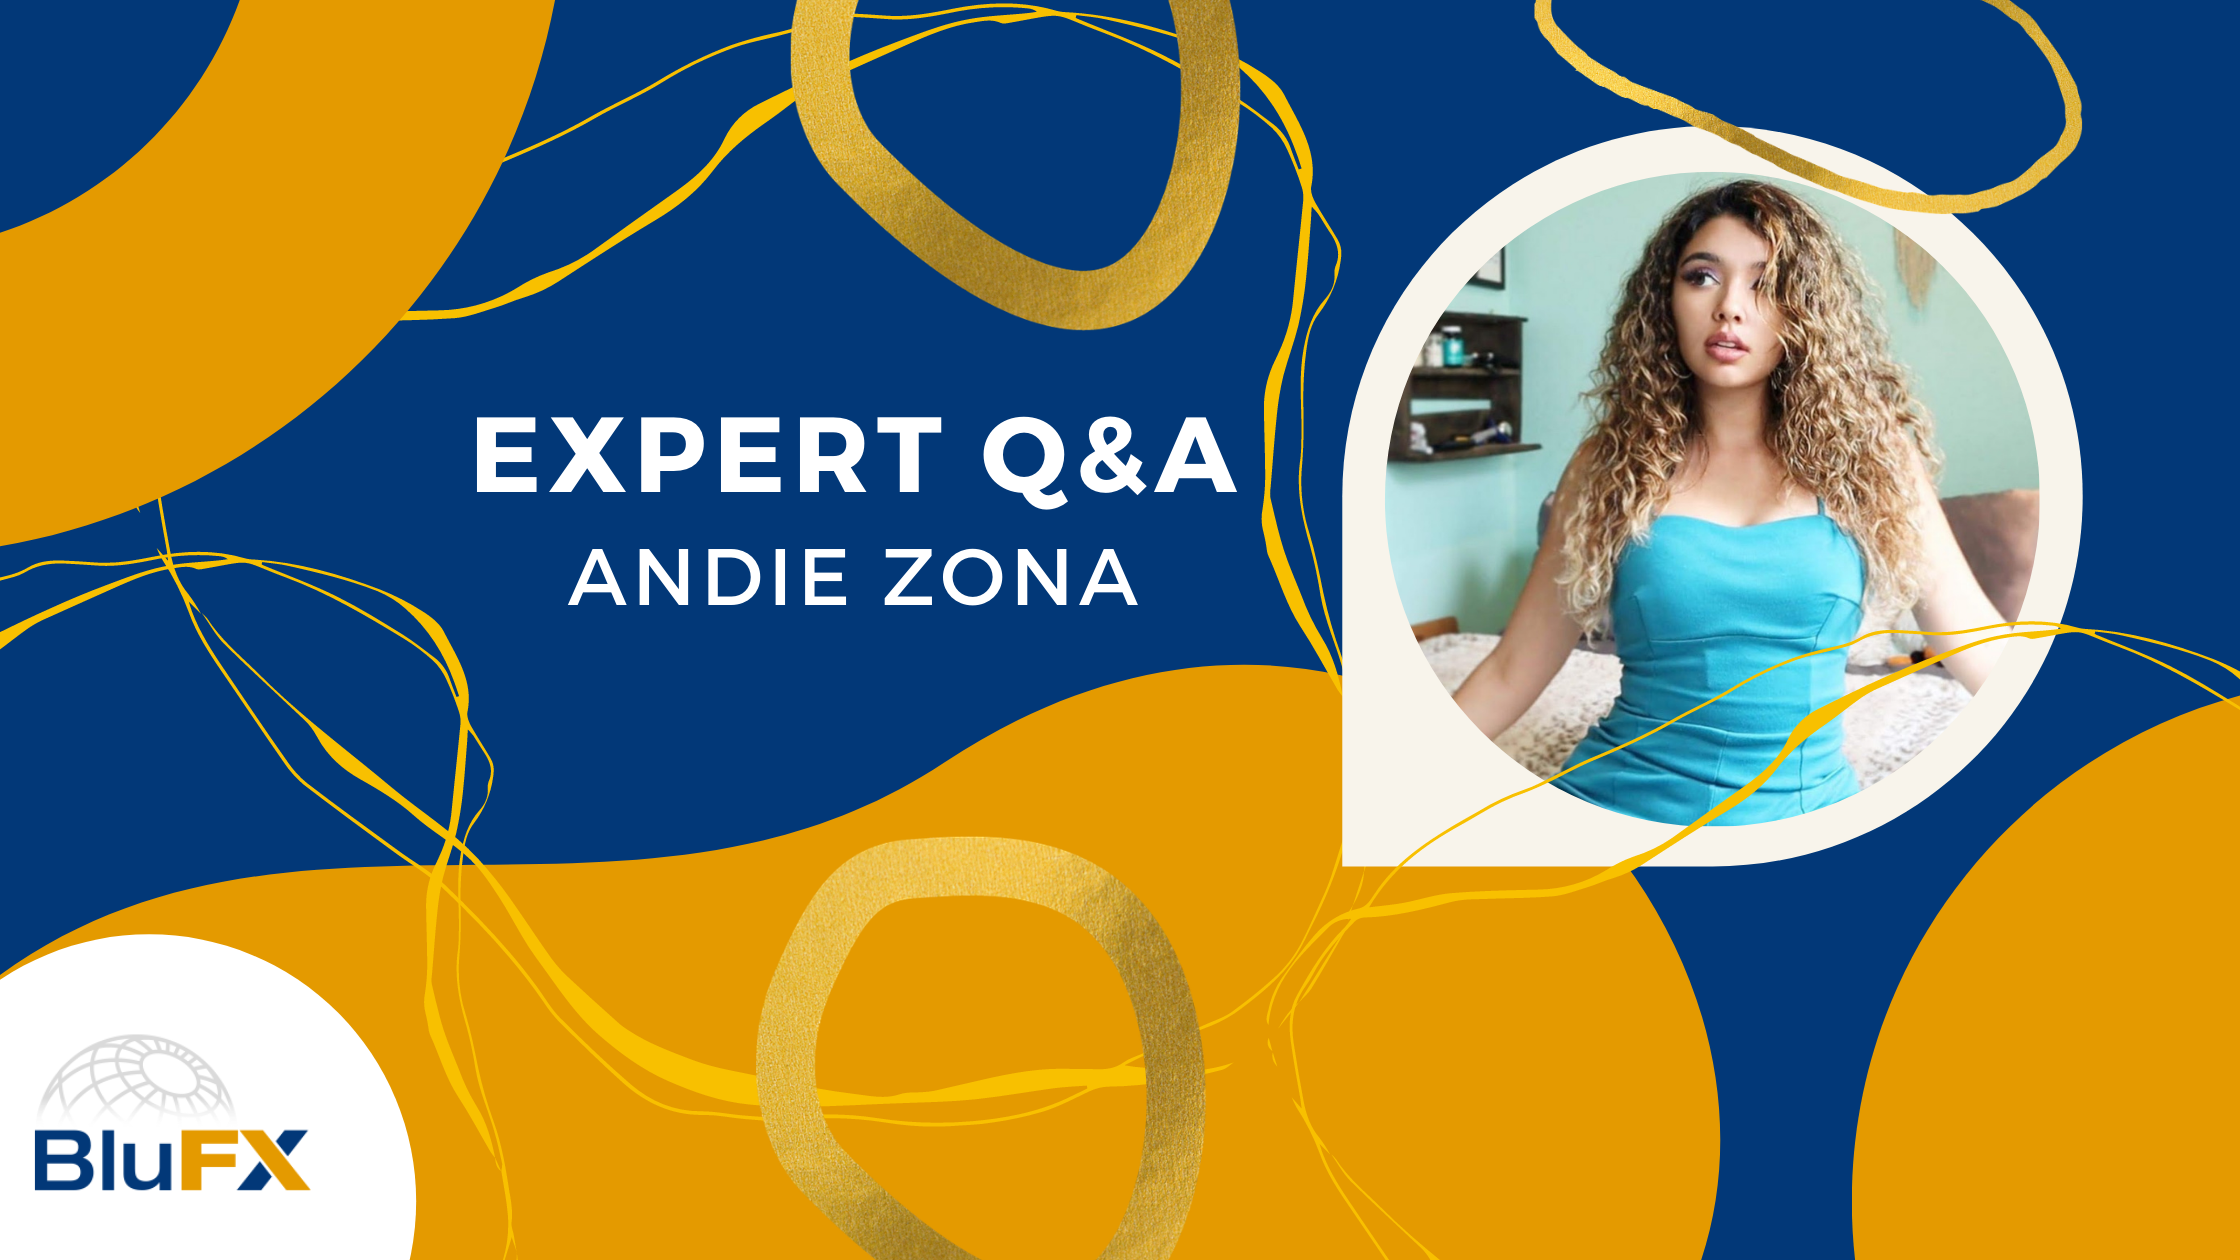 Expert Q&A Andie Zona